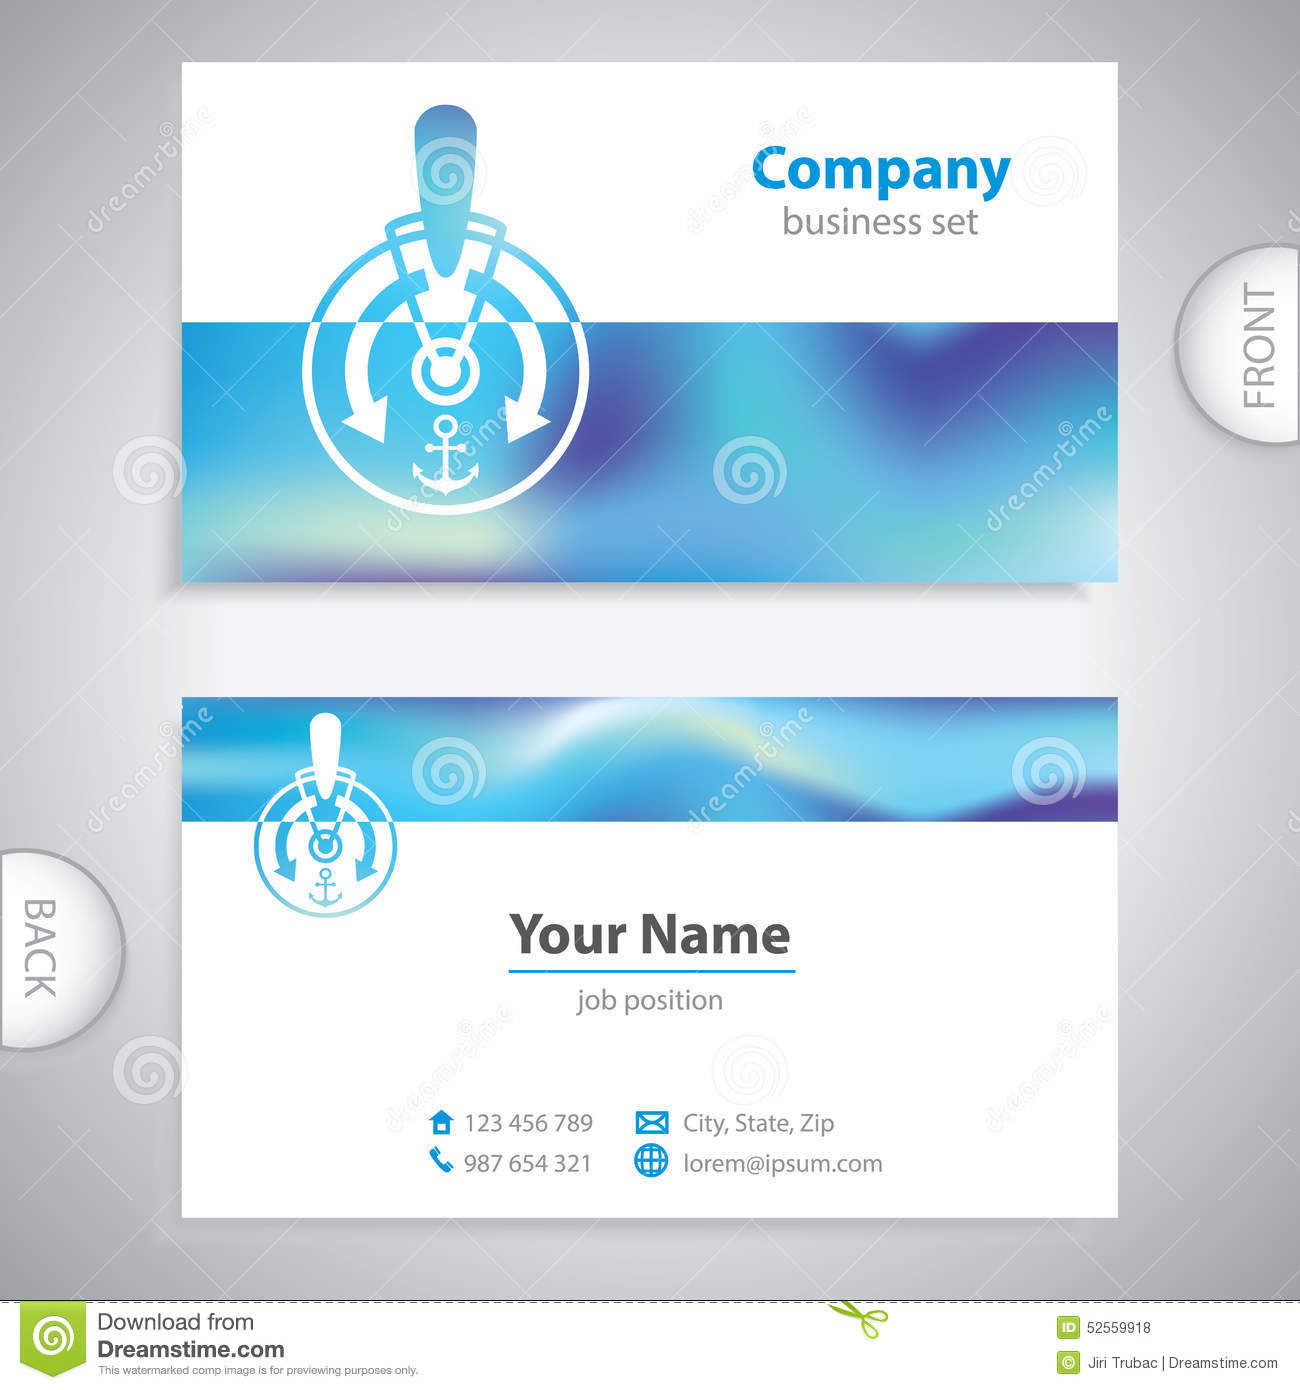 business card ships telegraph captain 39 s control room symbo stock vector image 52559918. Black Bedroom Furniture Sets. Home Design Ideas